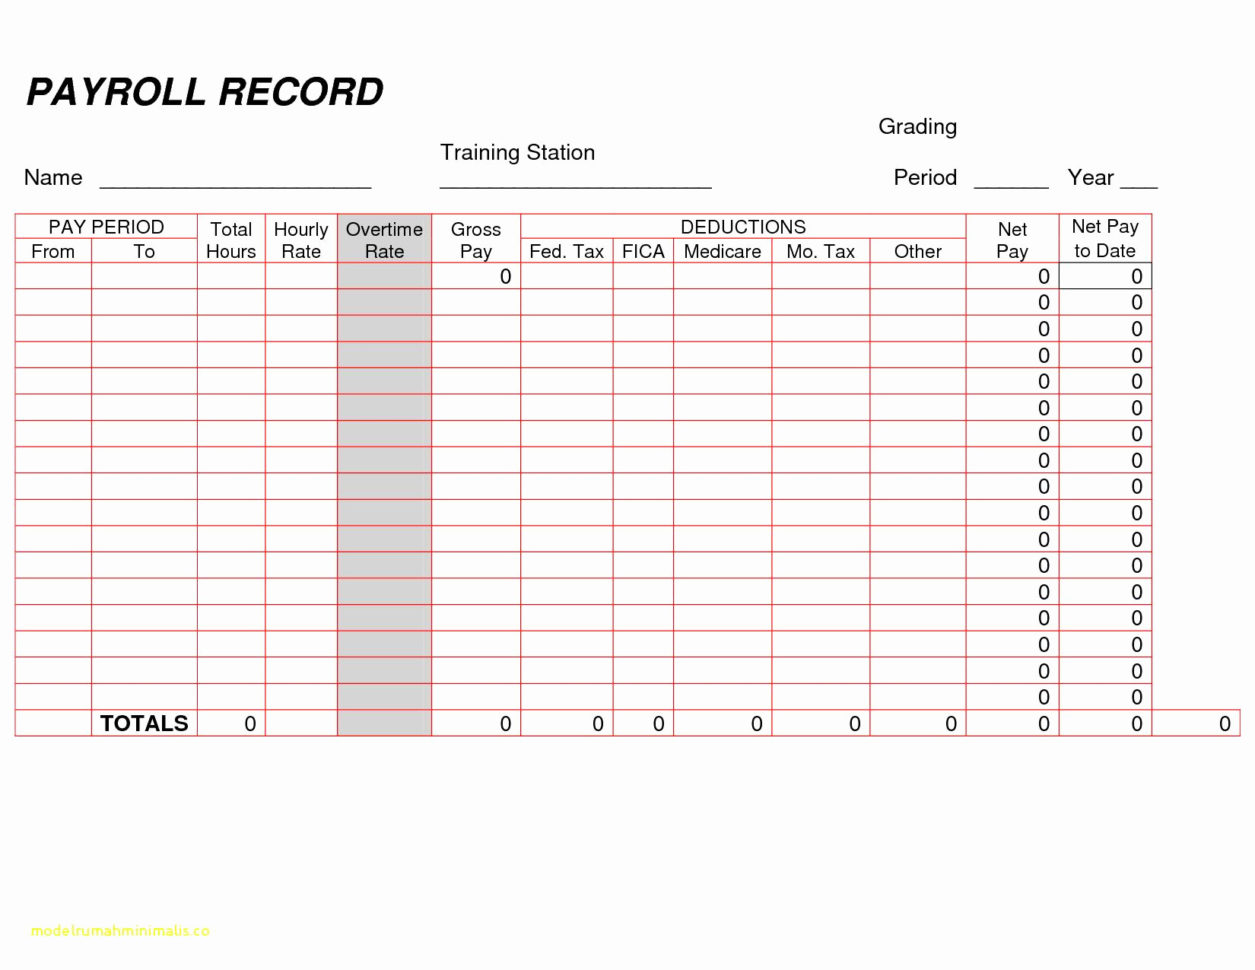 Pay Stub Spreadsheet Luxury Free Payroll Check Stub Template Intended For Free Payroll Sheet Template